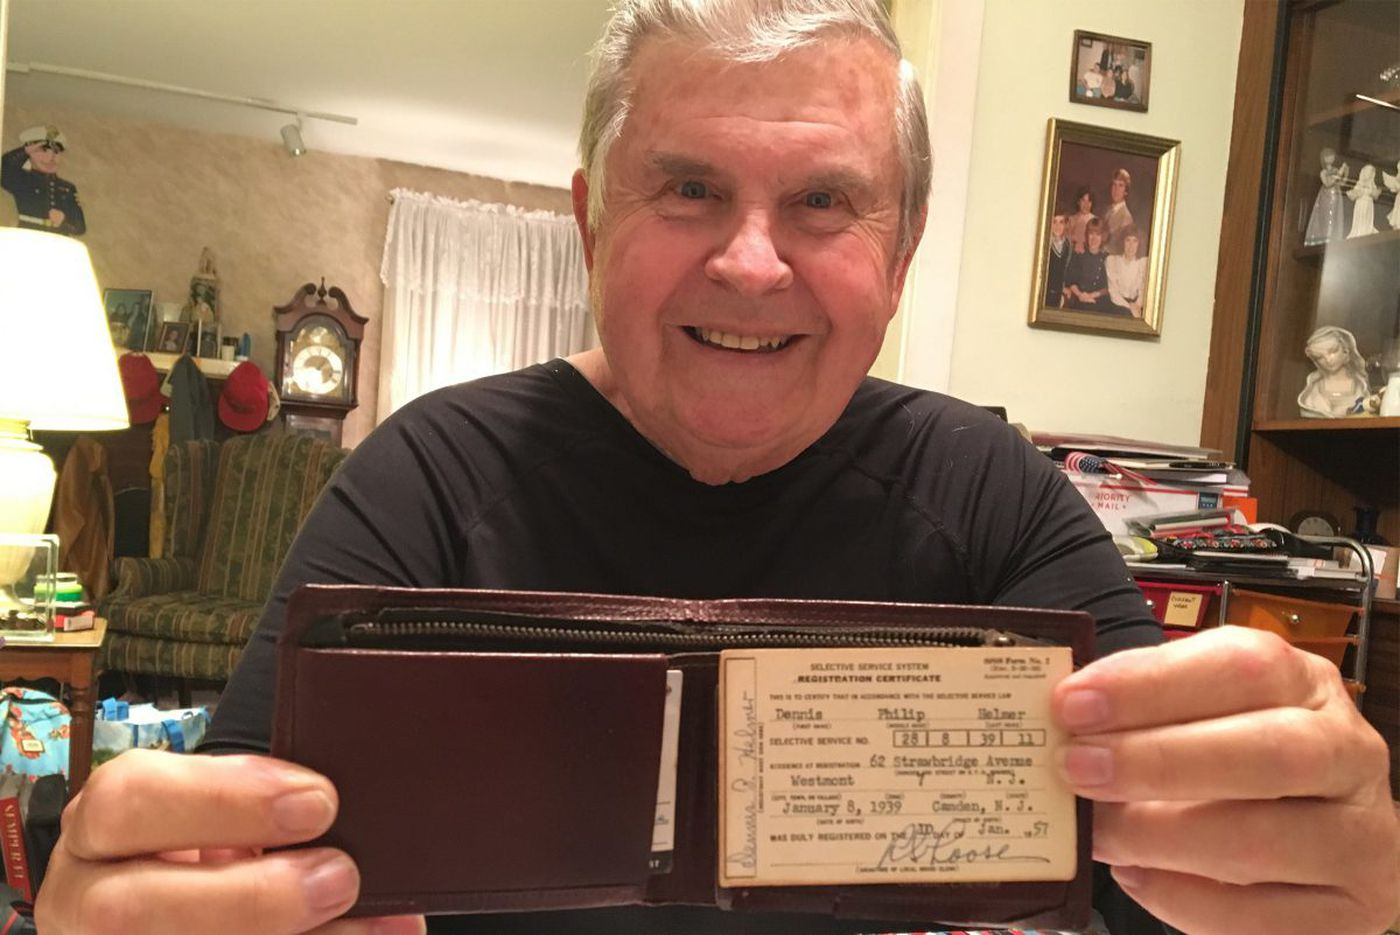 Stolen wallet - what stolen wallet? - is found after nearly 50 years